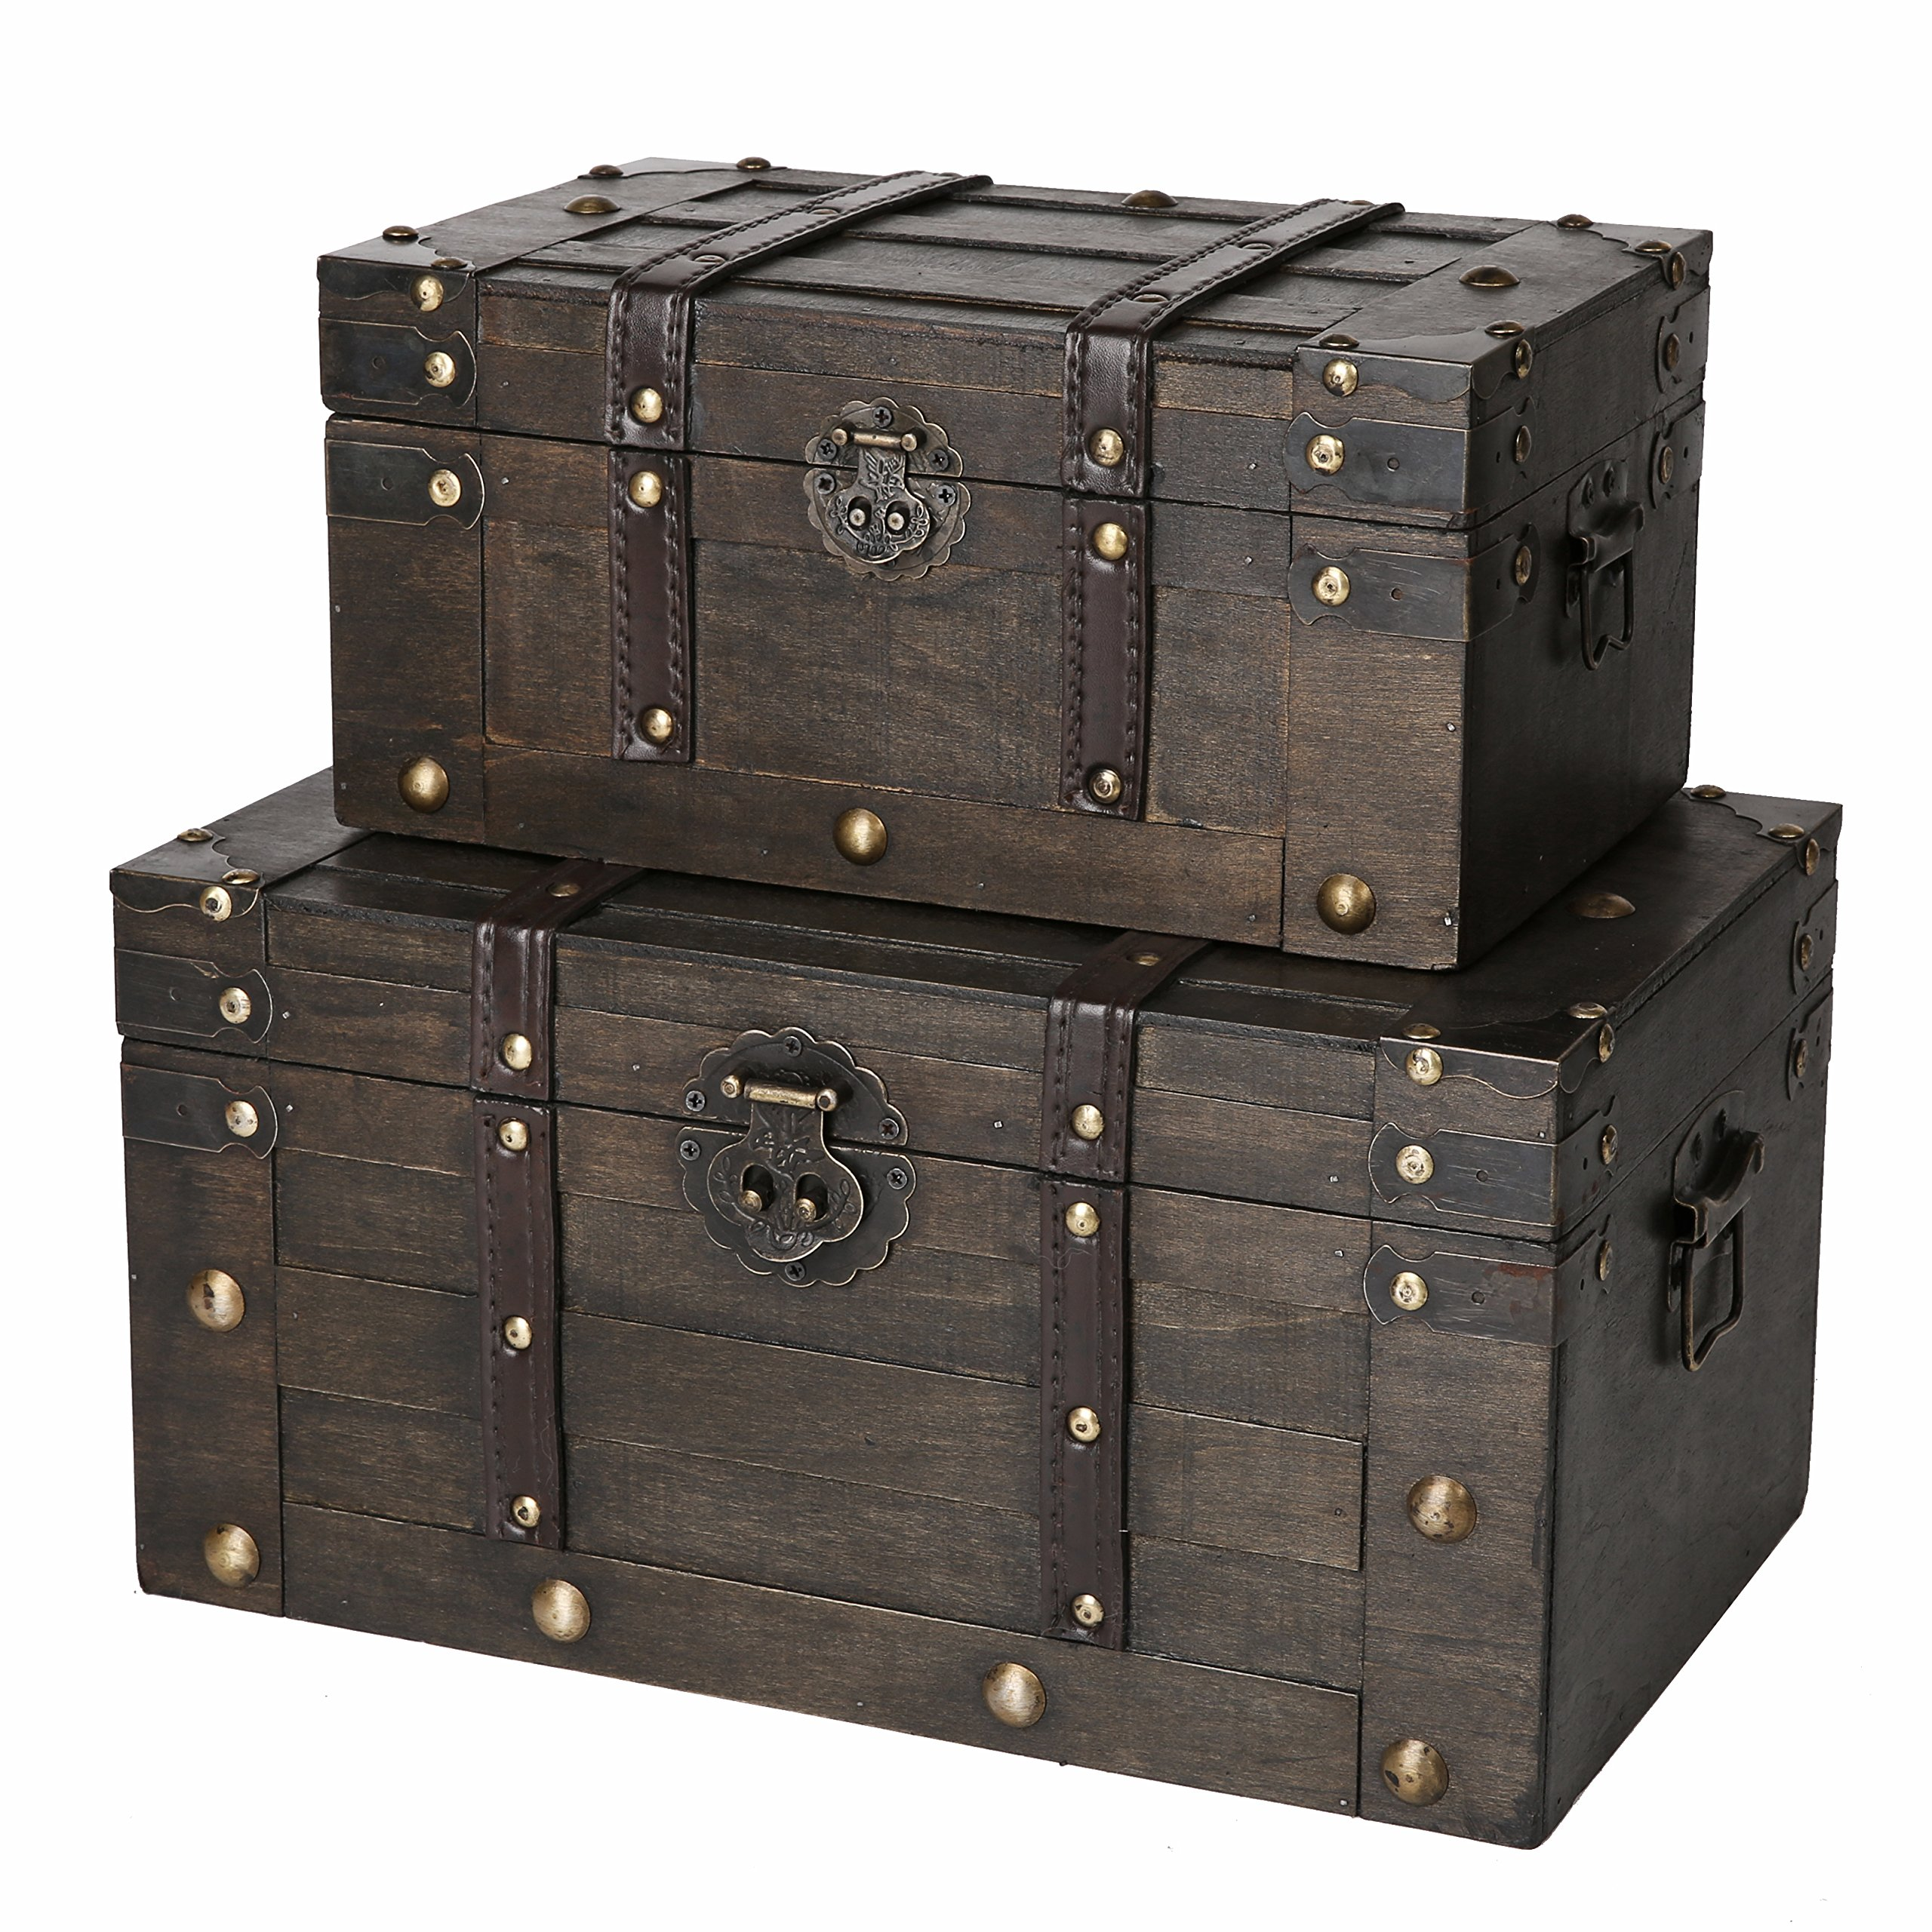 SLPR Alexander Wooden Trunk Chest with Straps (Set of 2, Rustic Brown) | Decorative Treasure Stash Box Old-Fashioned Antique Vintage Style for Birthday Parties Wedding Decoration